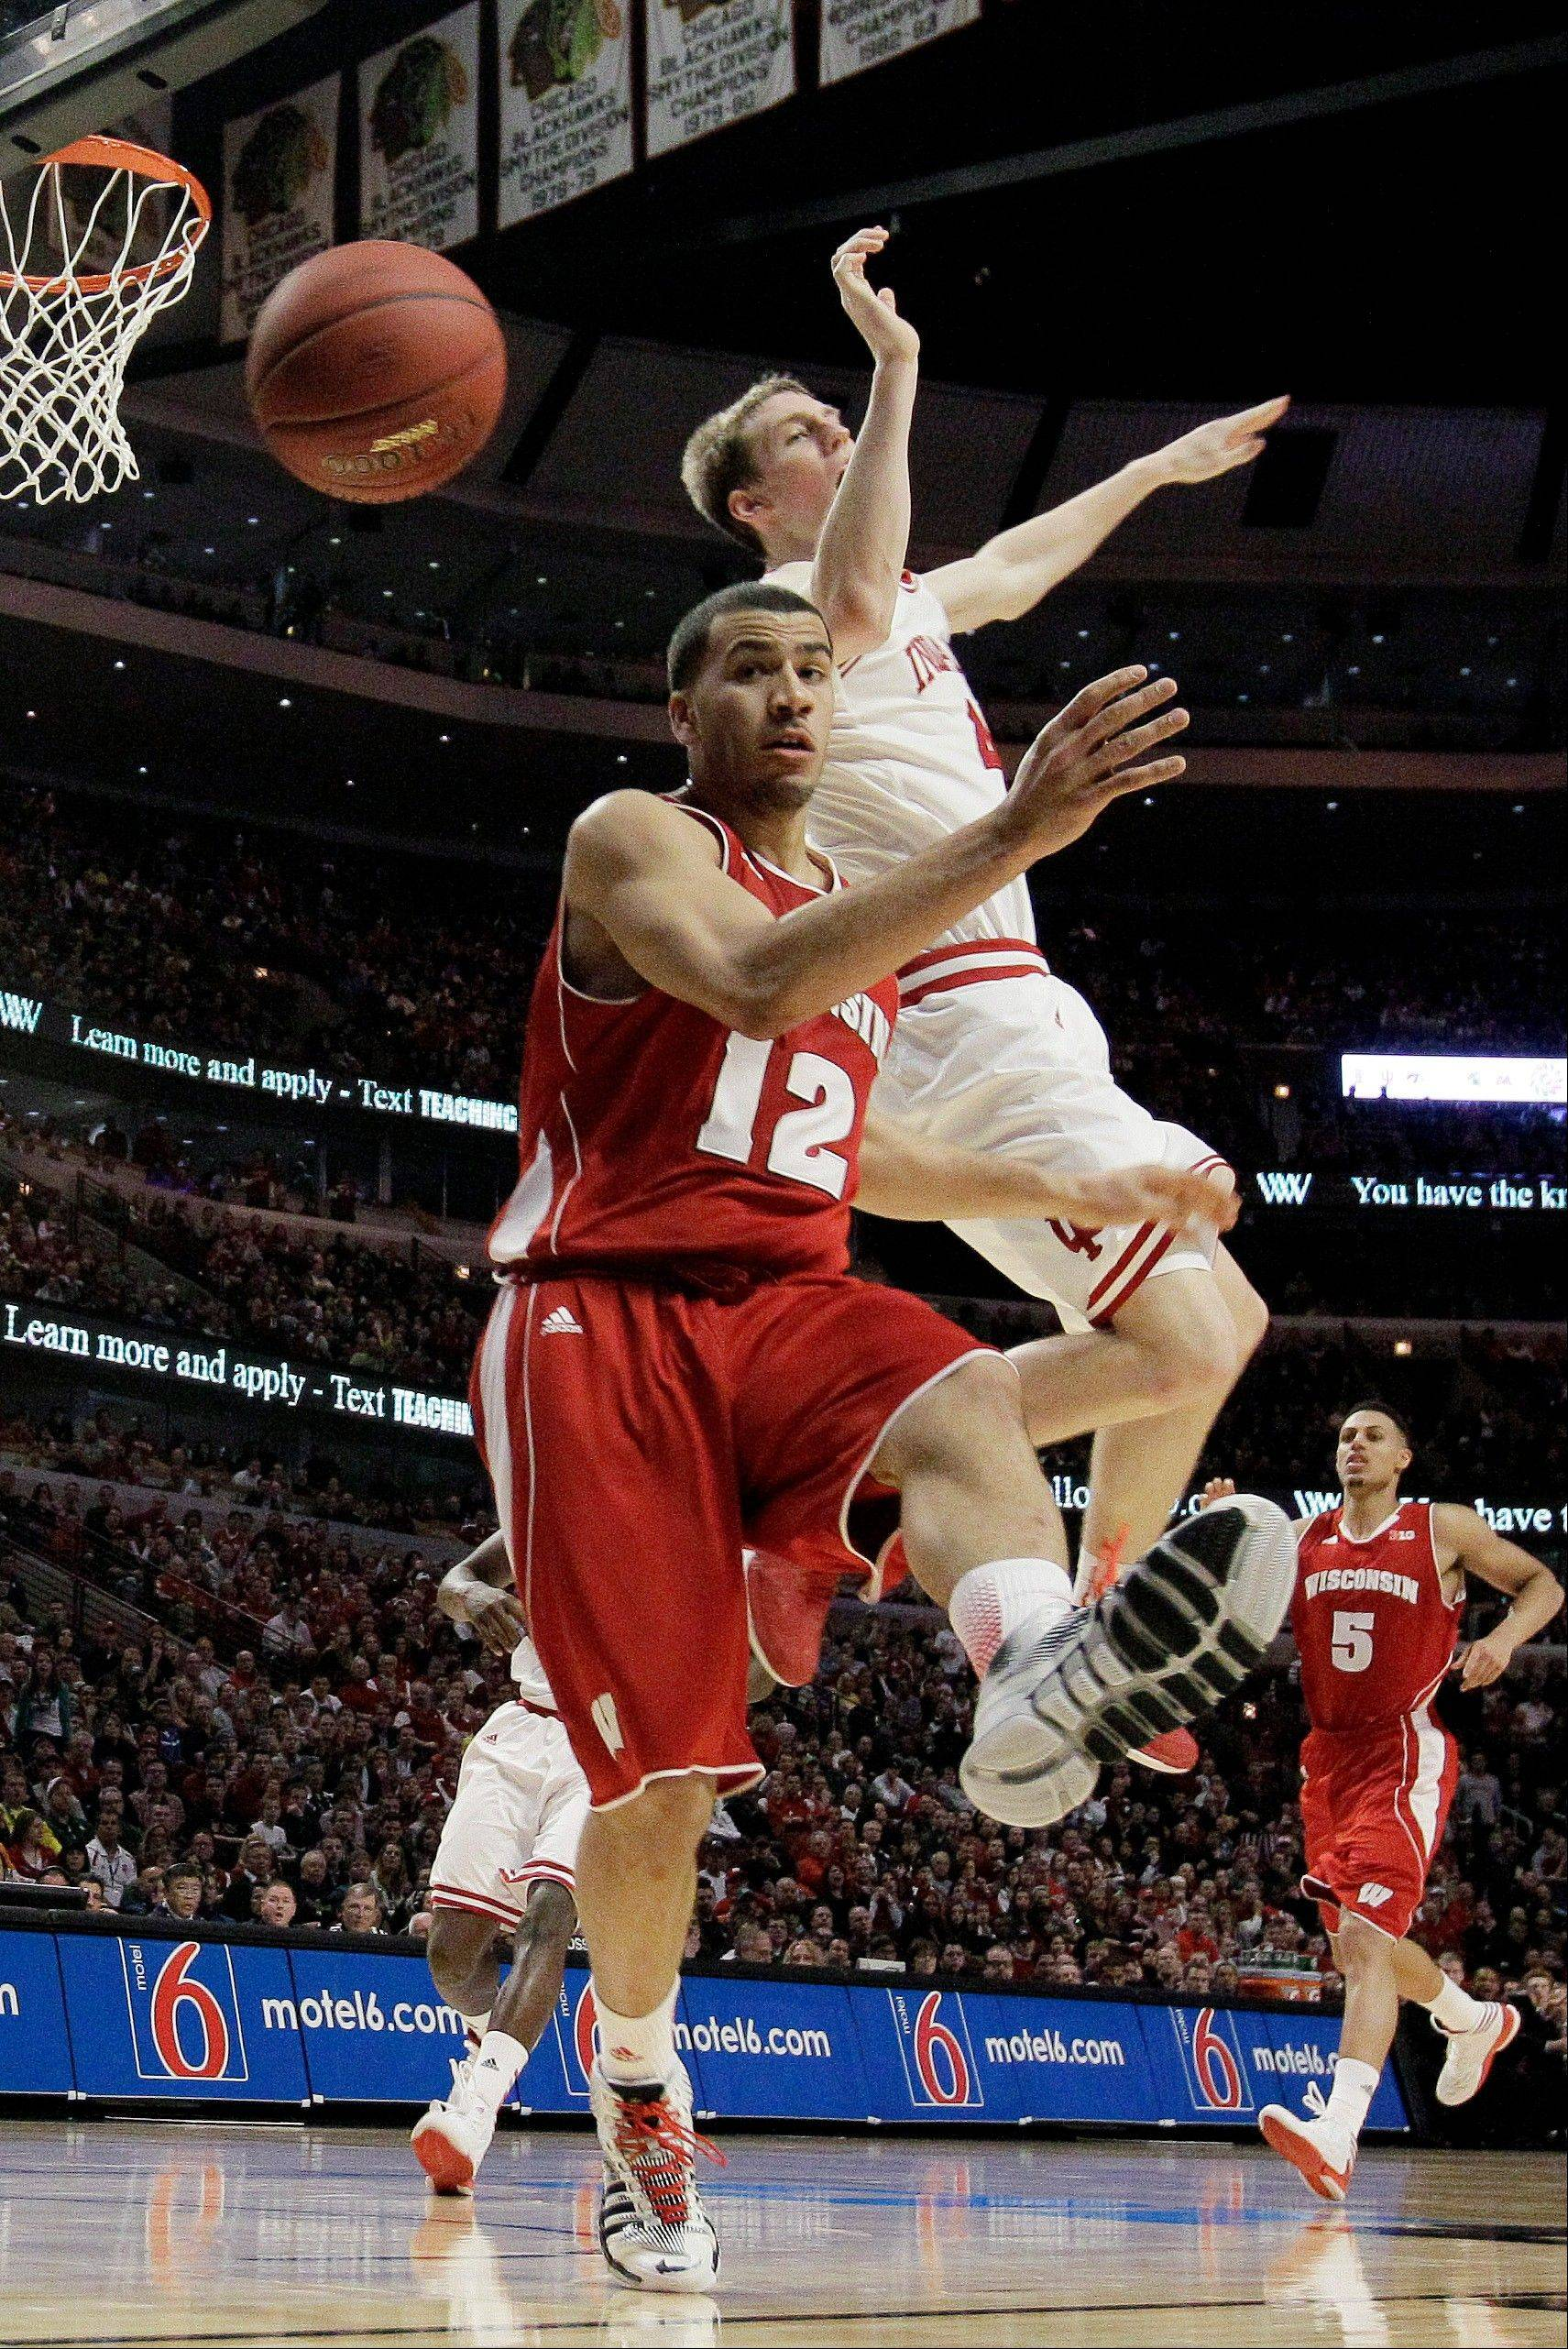 Wisconsin's Traevon Jackson (12) and Indiana's Cody Zeller go after a loose ball during the second half of an NCAA college basketball game at the Big Ten tournament Saturday, March 16, 2013, in Chicago. Wisconsin won 68-56.